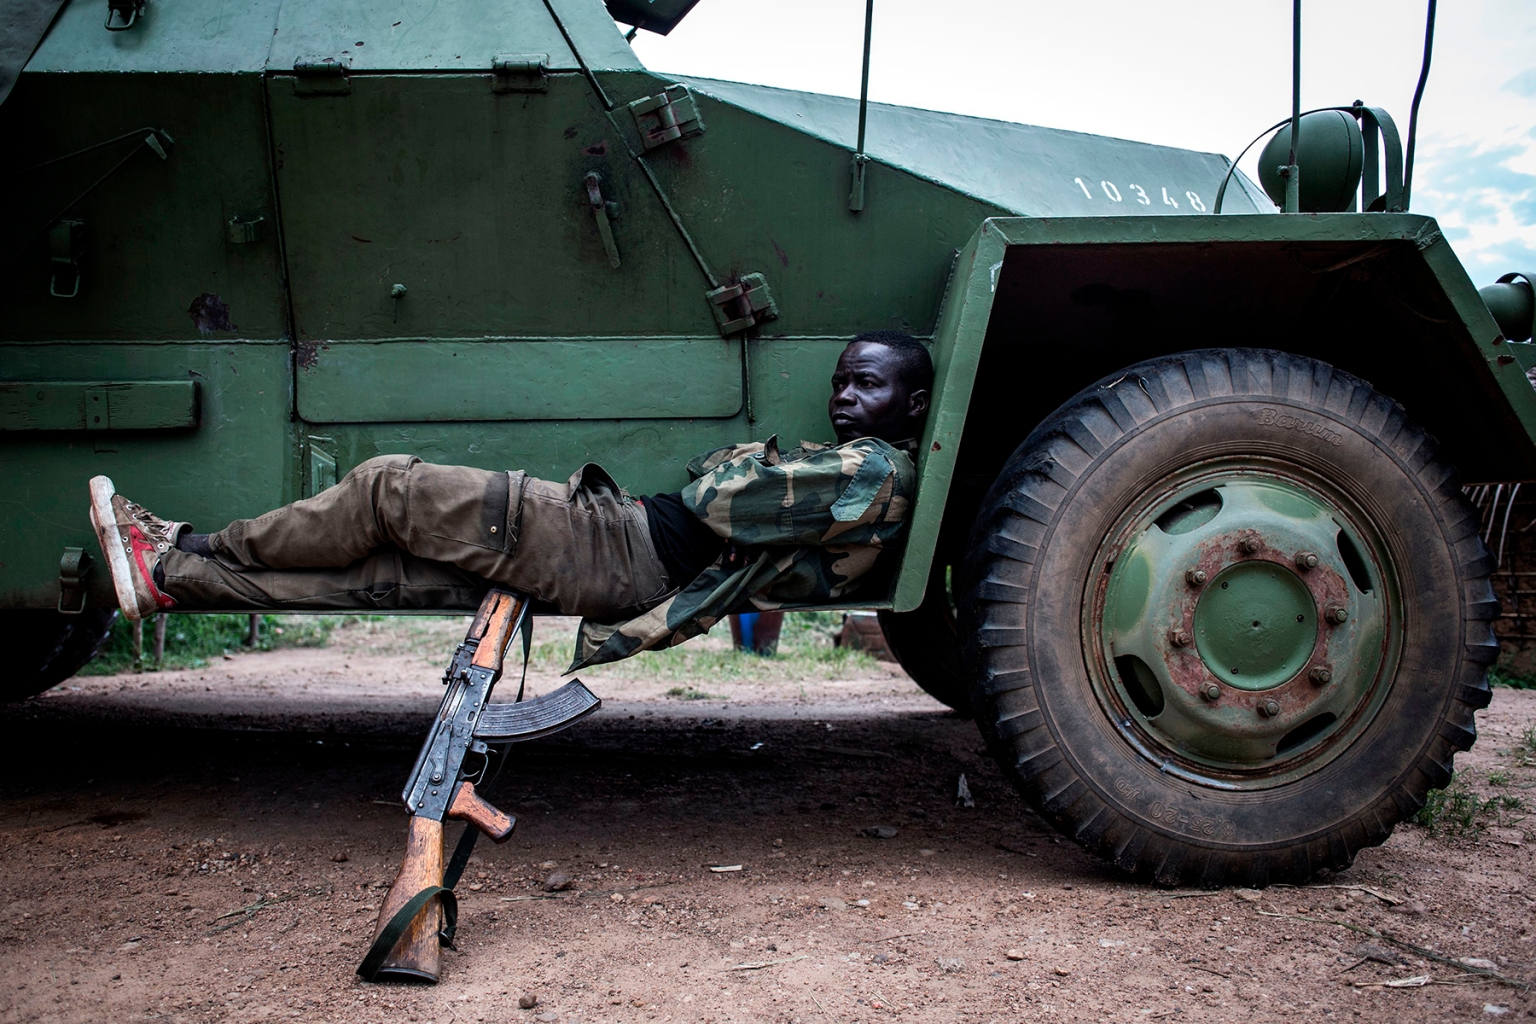 A soldier from the Democratic Republic of the Congo is seen at a military base outside Oicha on Oct. 7. JOHN WESSELS/AFP/GETTY IMAGES